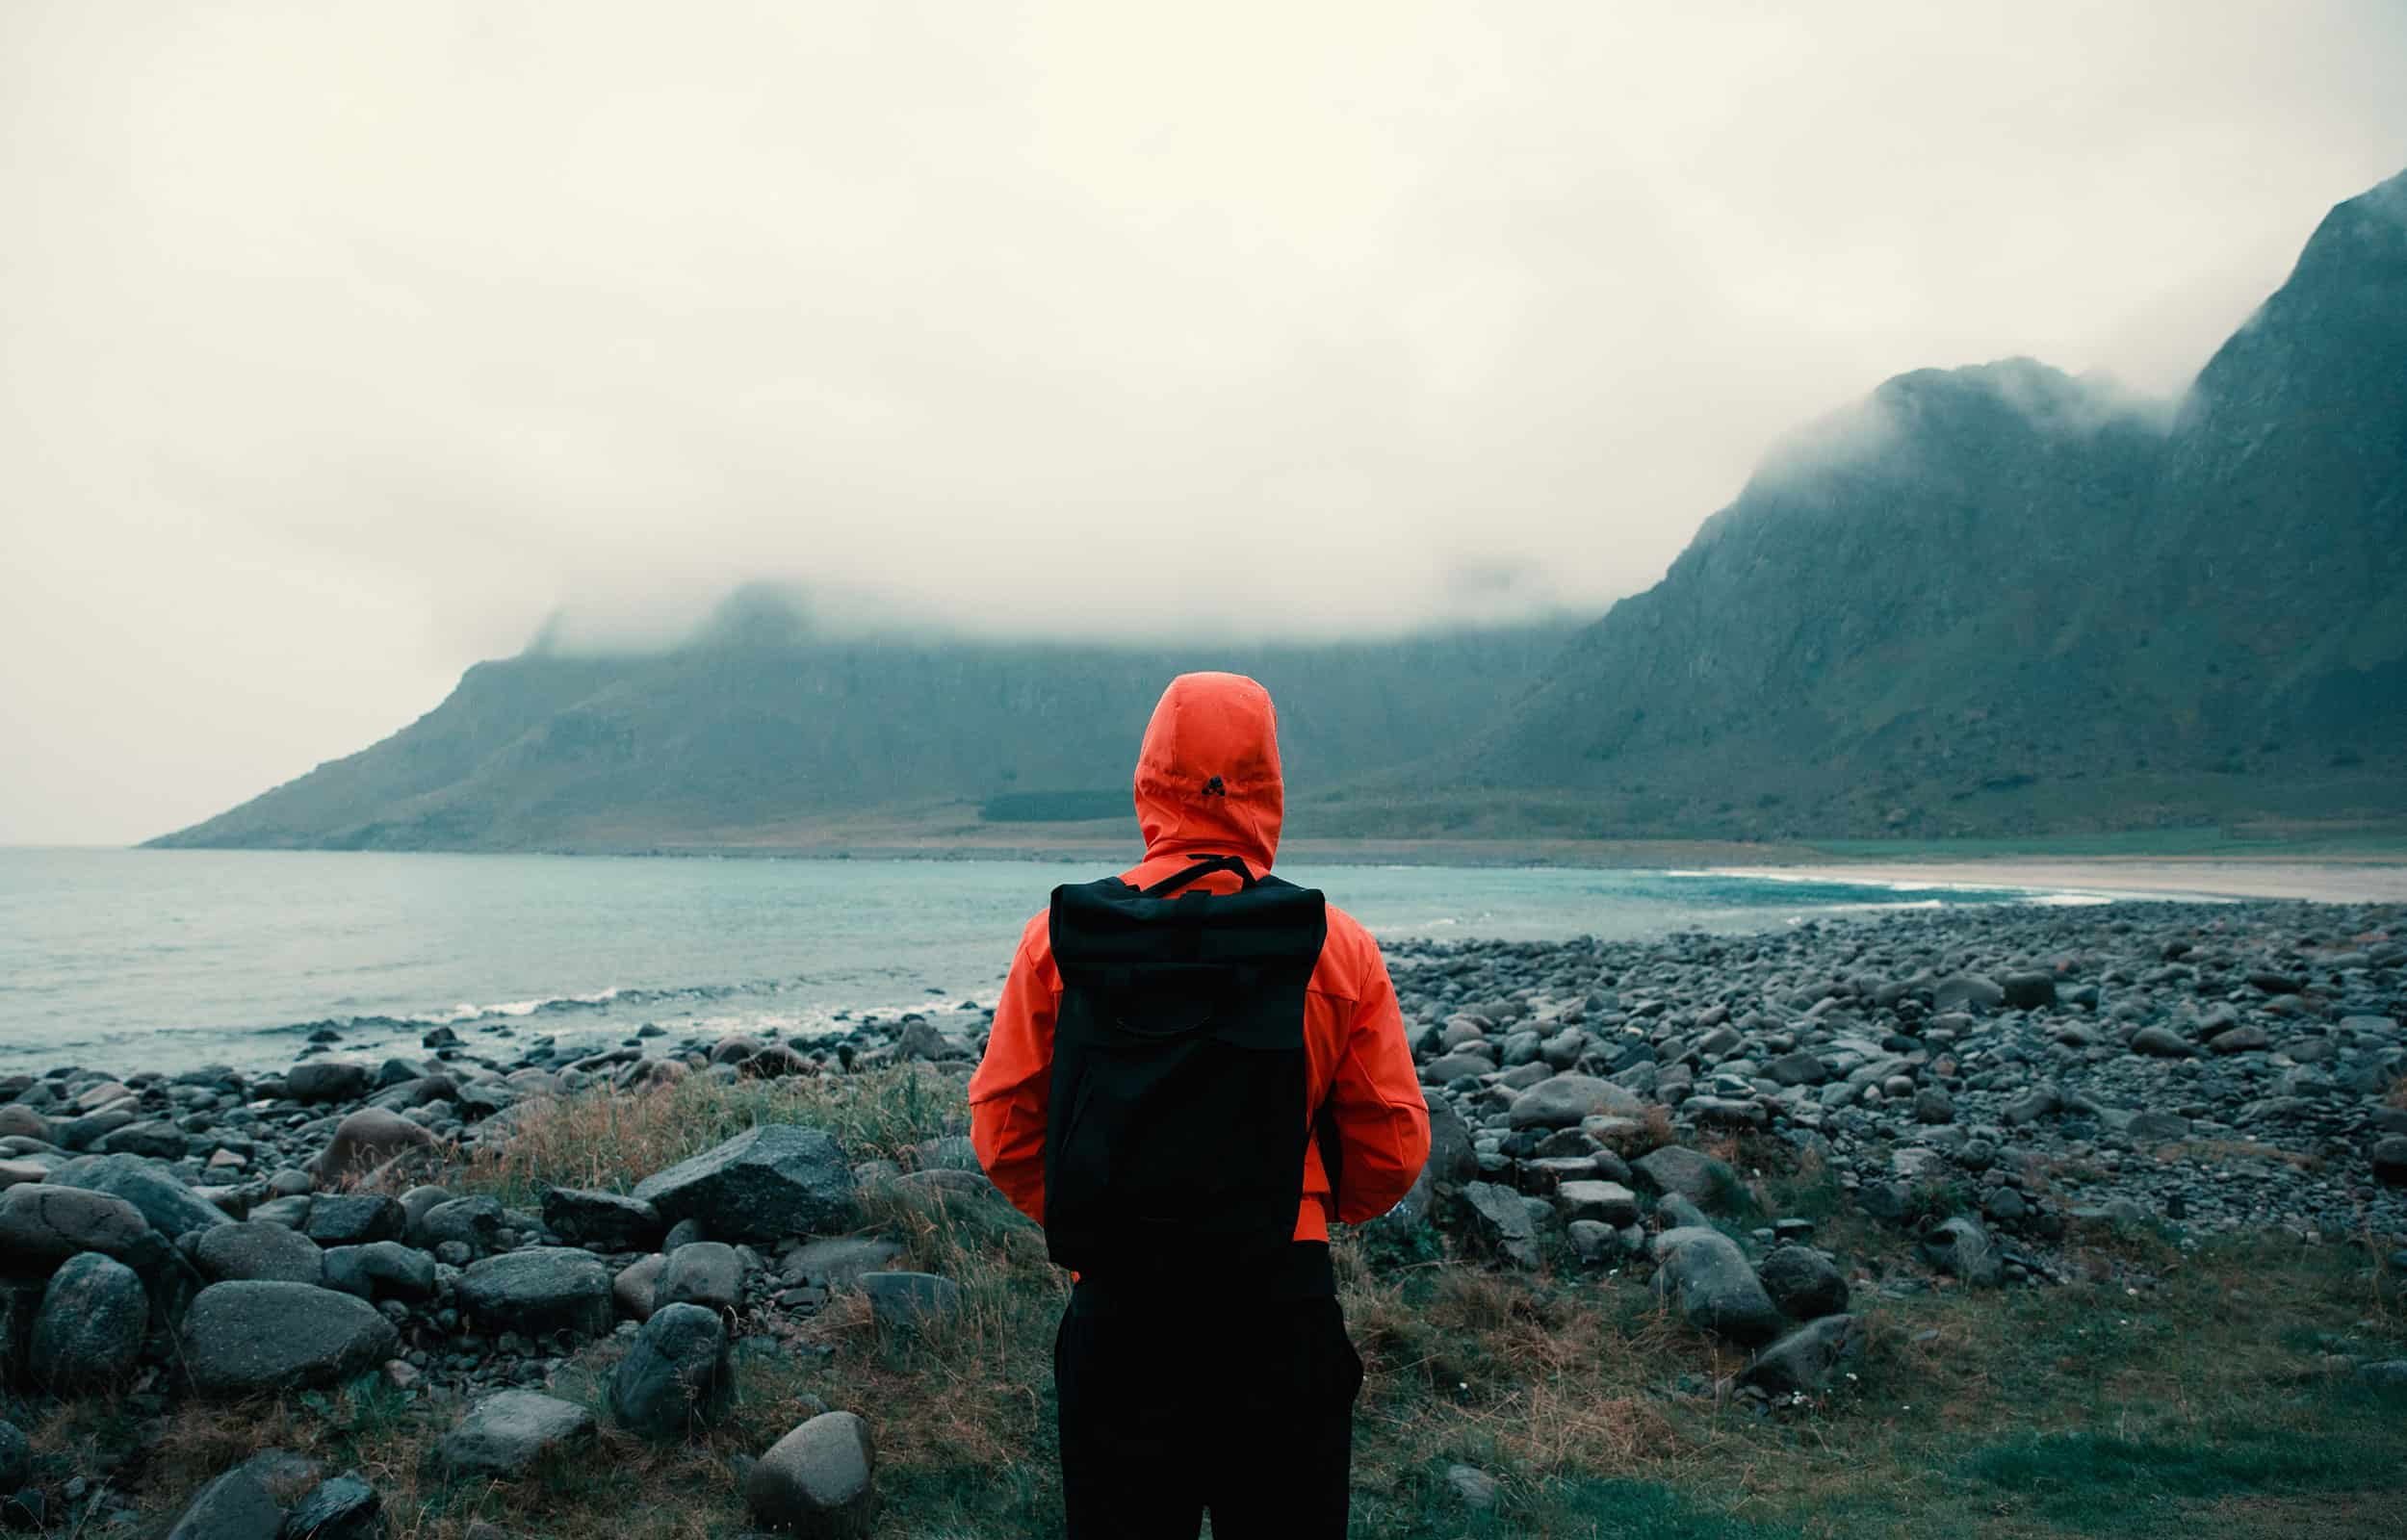 person looking at a lake and mountain in misty weather